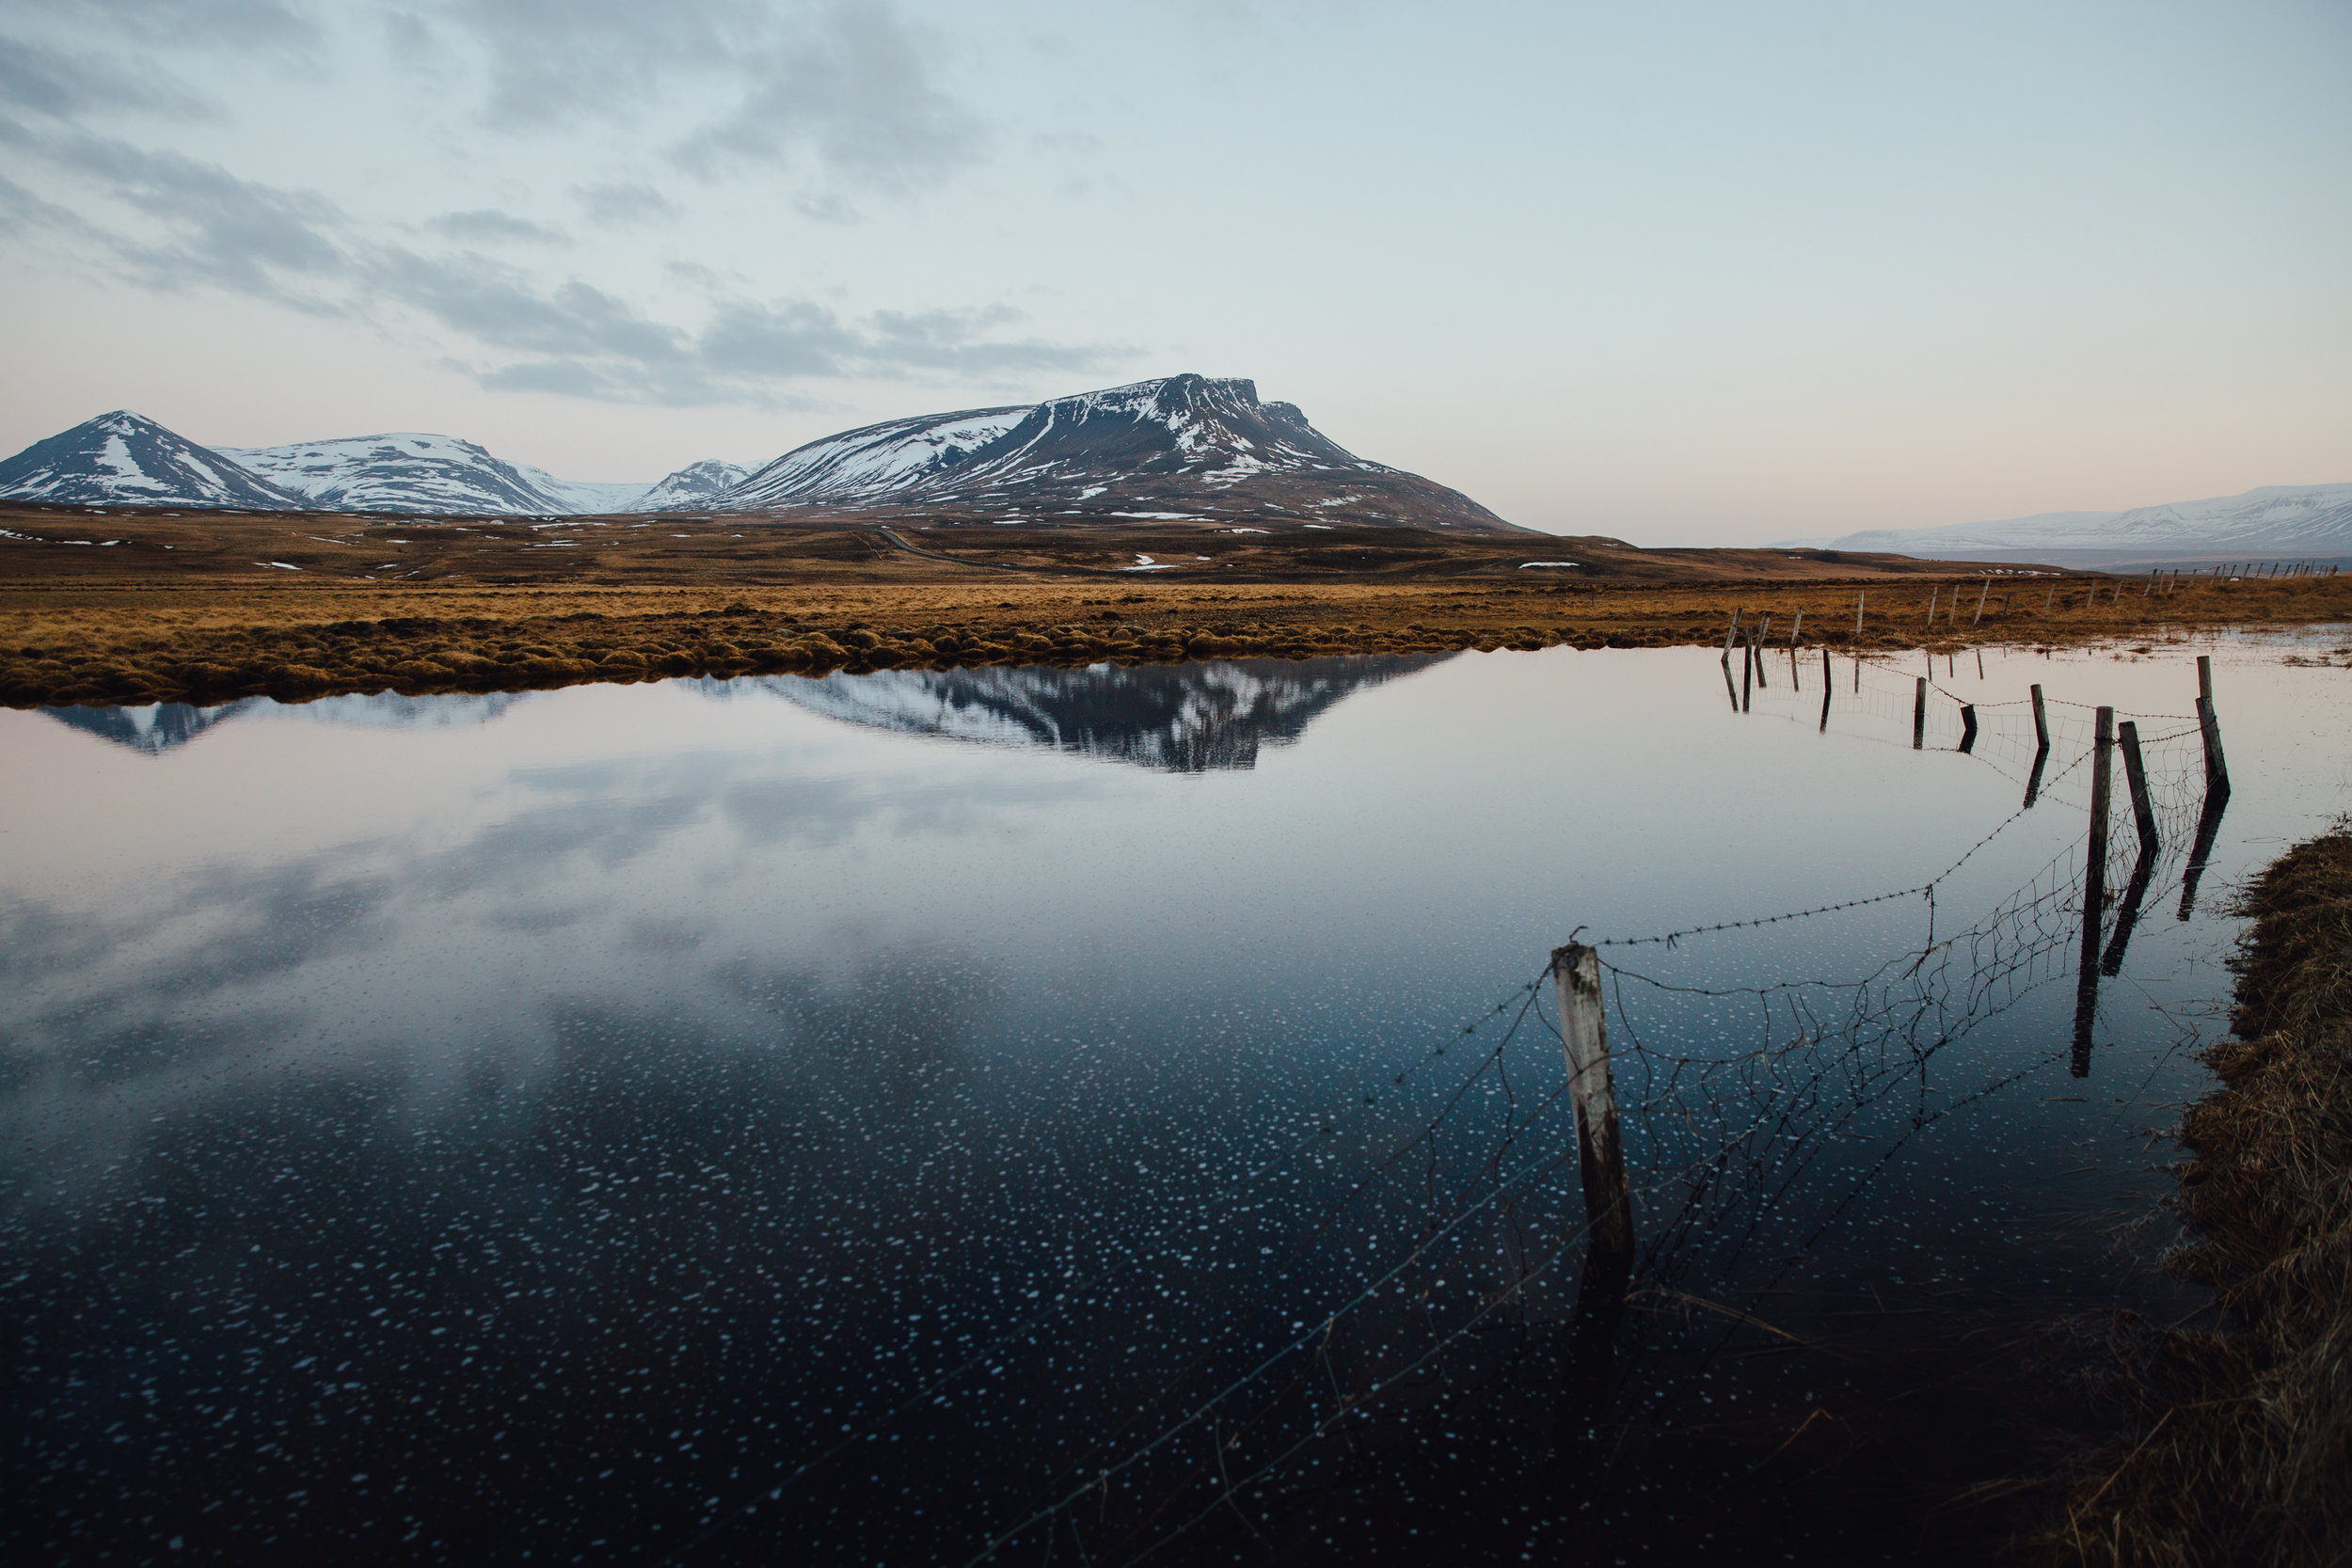 MikeSeehagel-commercial-lifestyle-photography-iceland-IMG_0587A.jpg